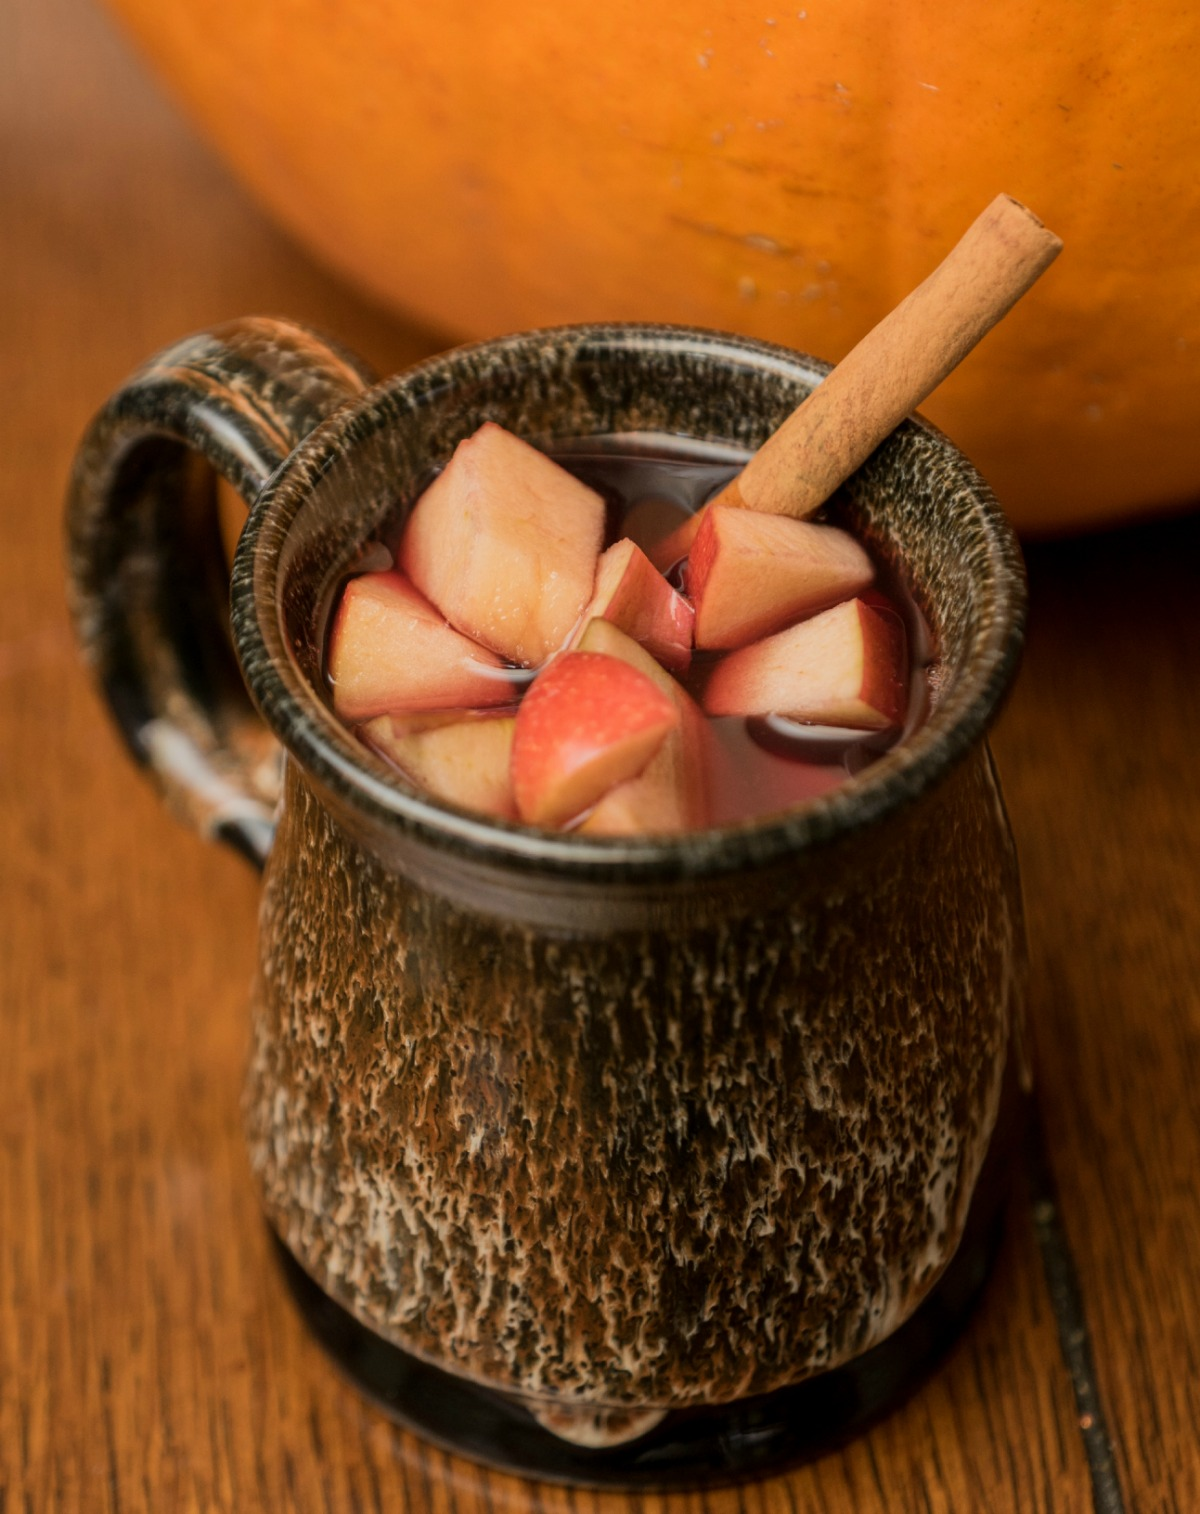 For your next fall get-together or Thanksgiving feast, serve up this pumpkin infused sangria to bewitch your guests with the warm, spiced flavors of autumn.